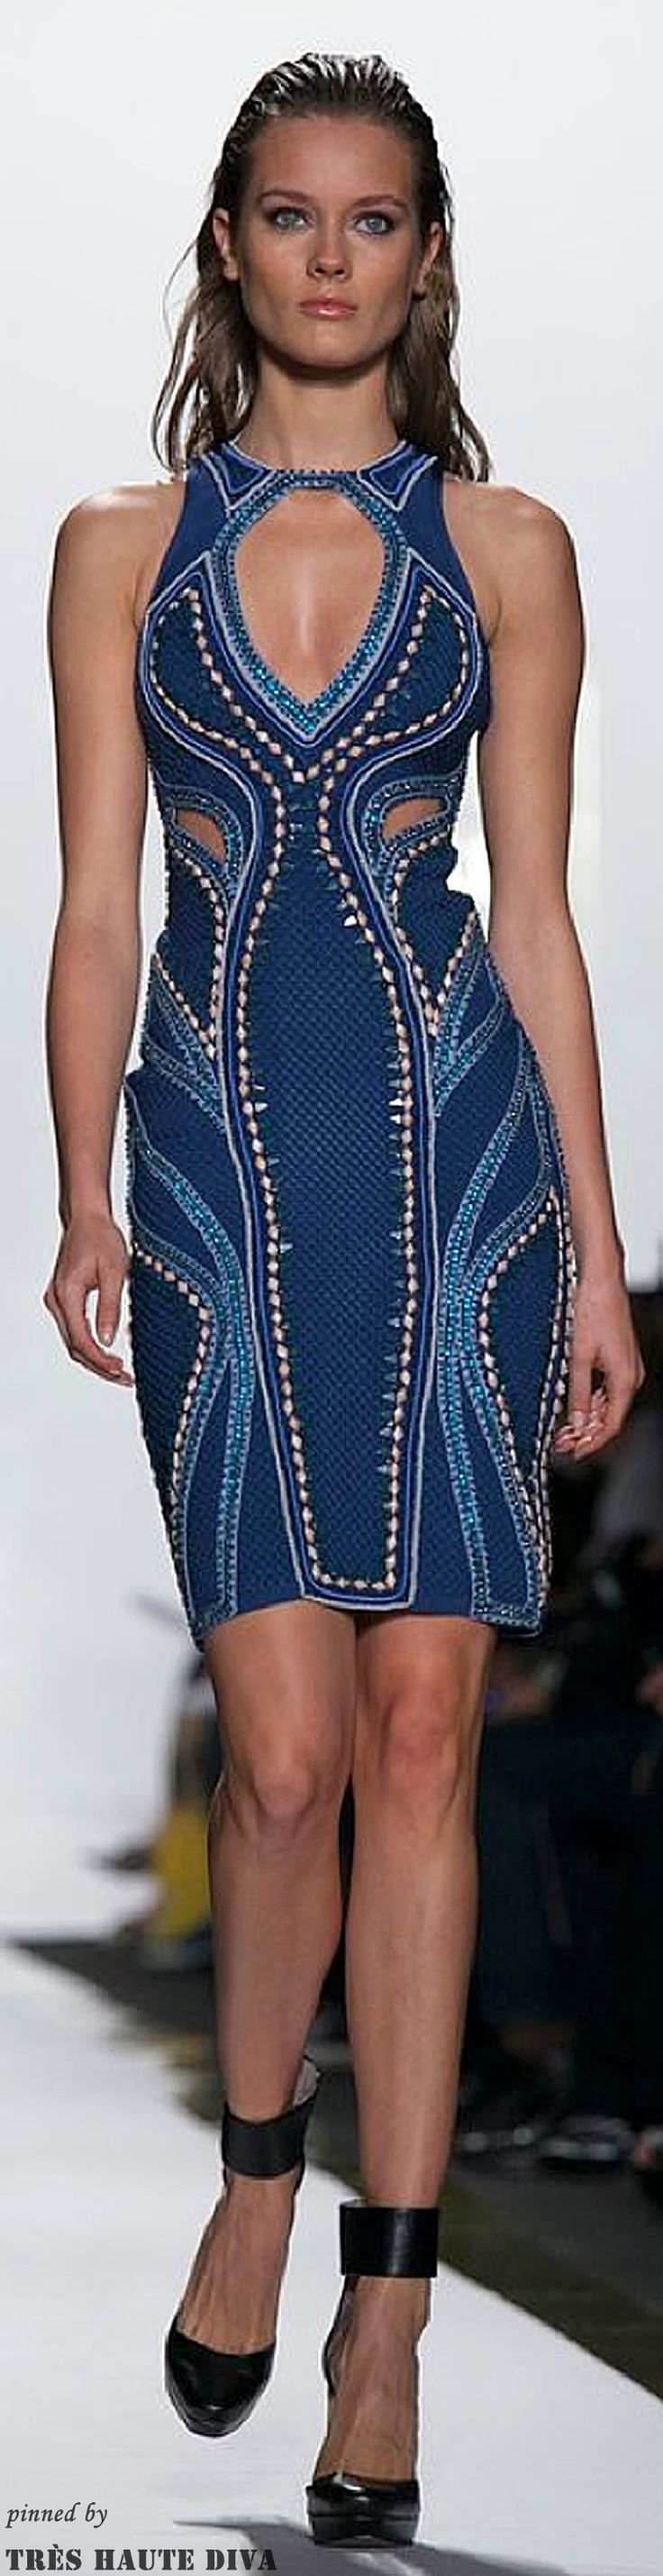 New York Fashion Week  Herve Leger Spring 2014 RTW